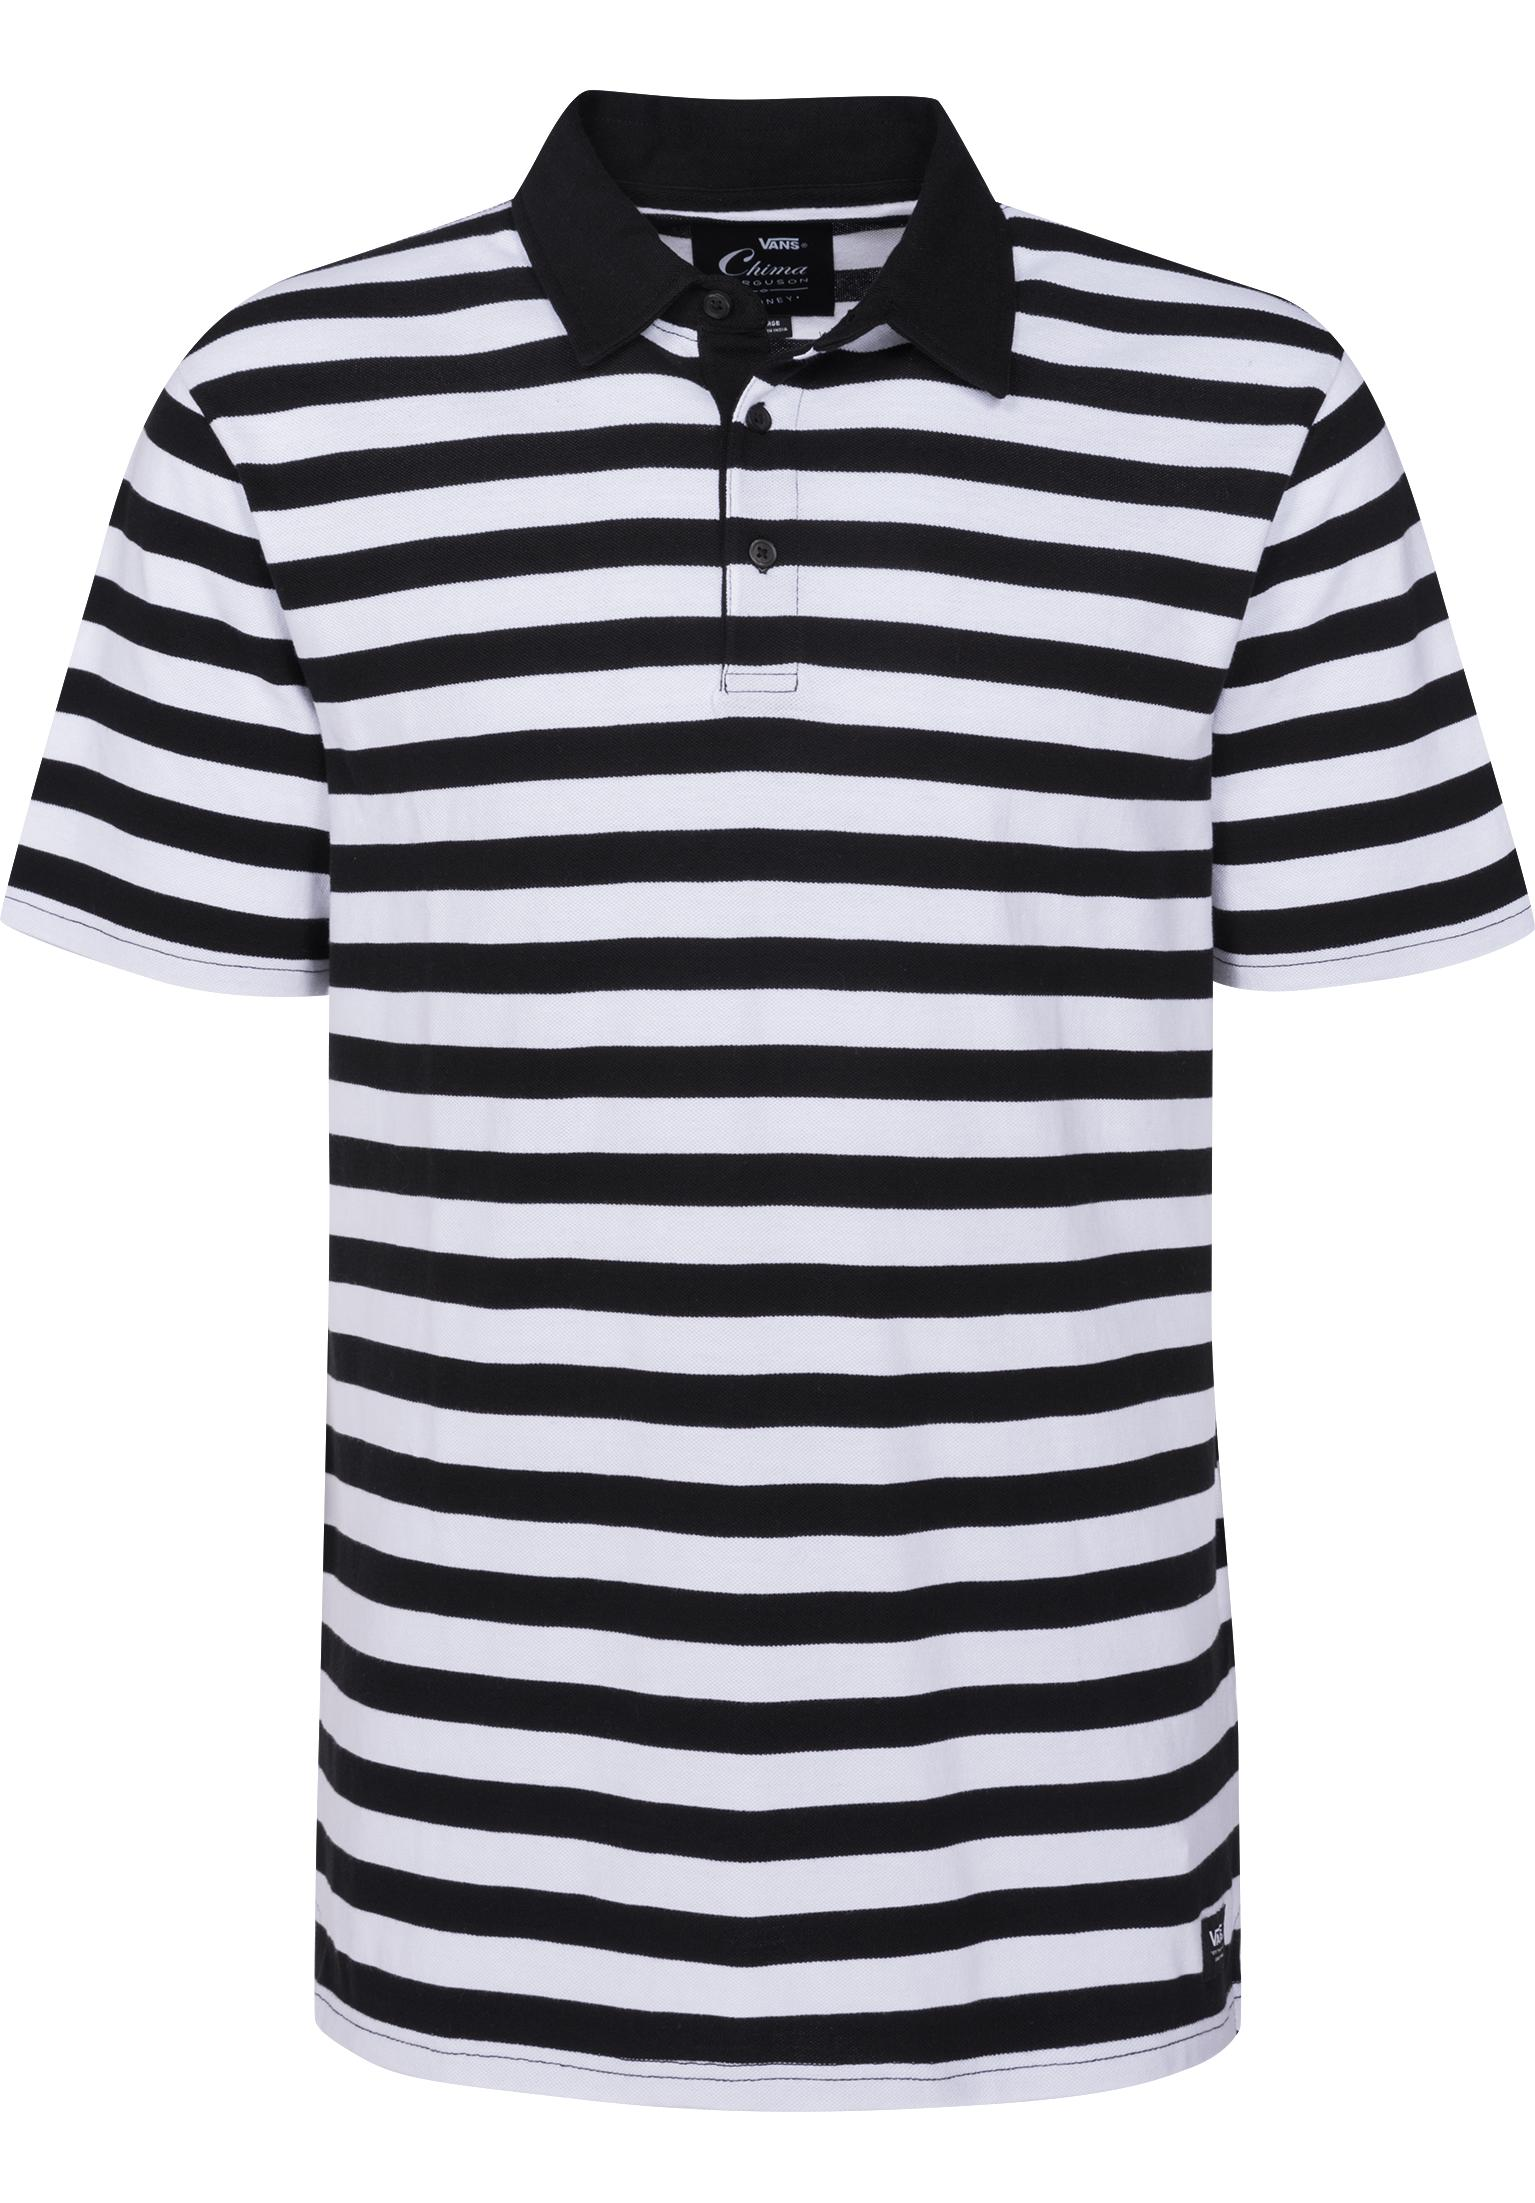 227c70ff92 Chima Striped Polo Vans Polo Shirts in black-white for Men